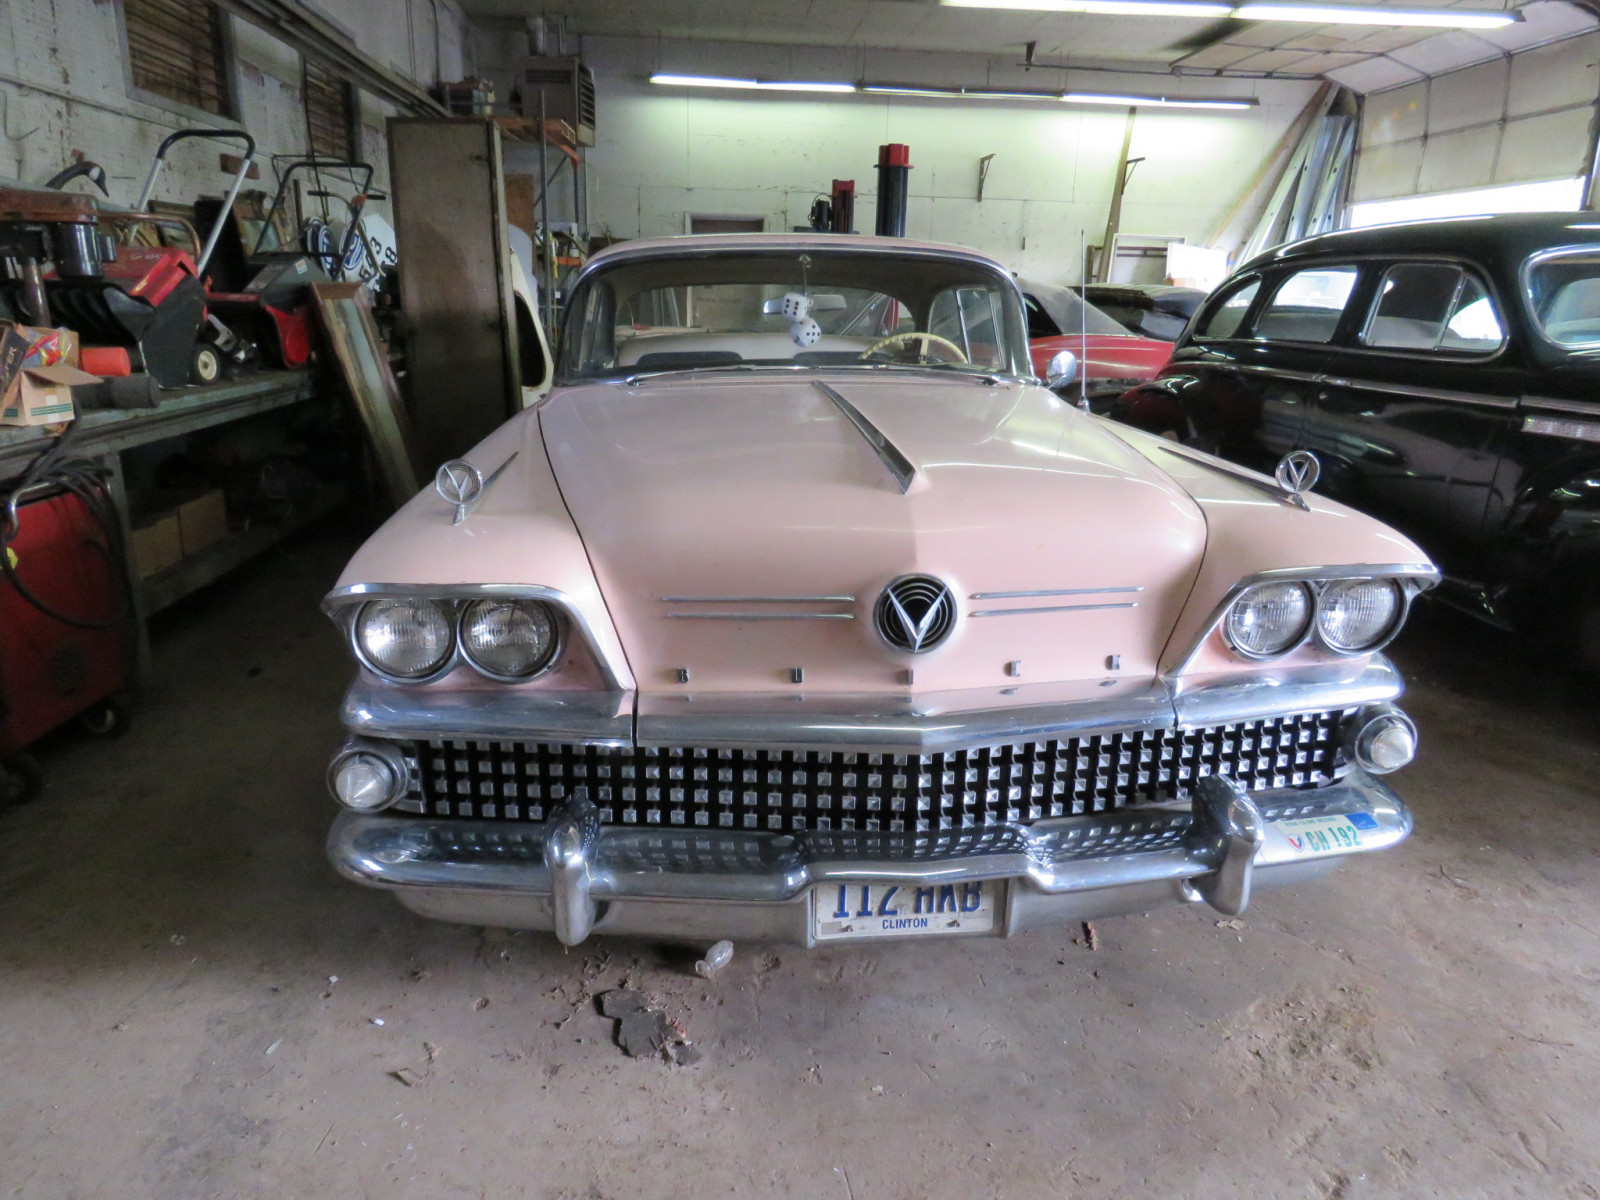 1958 Buick Special 4dr HT - Image 2